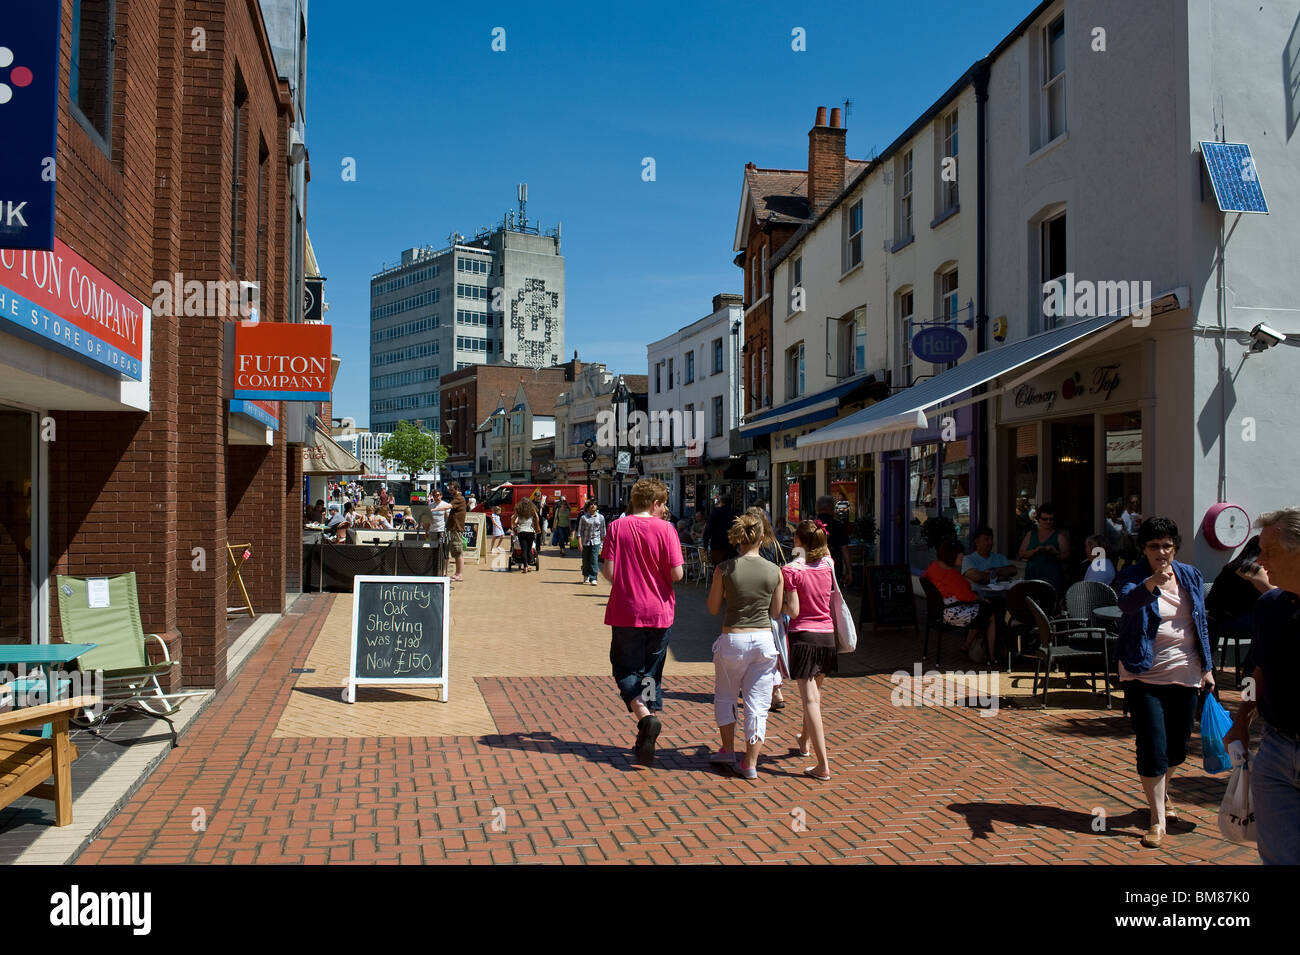 People walking in Chelmsford Town centre in Essex. - Stock Image